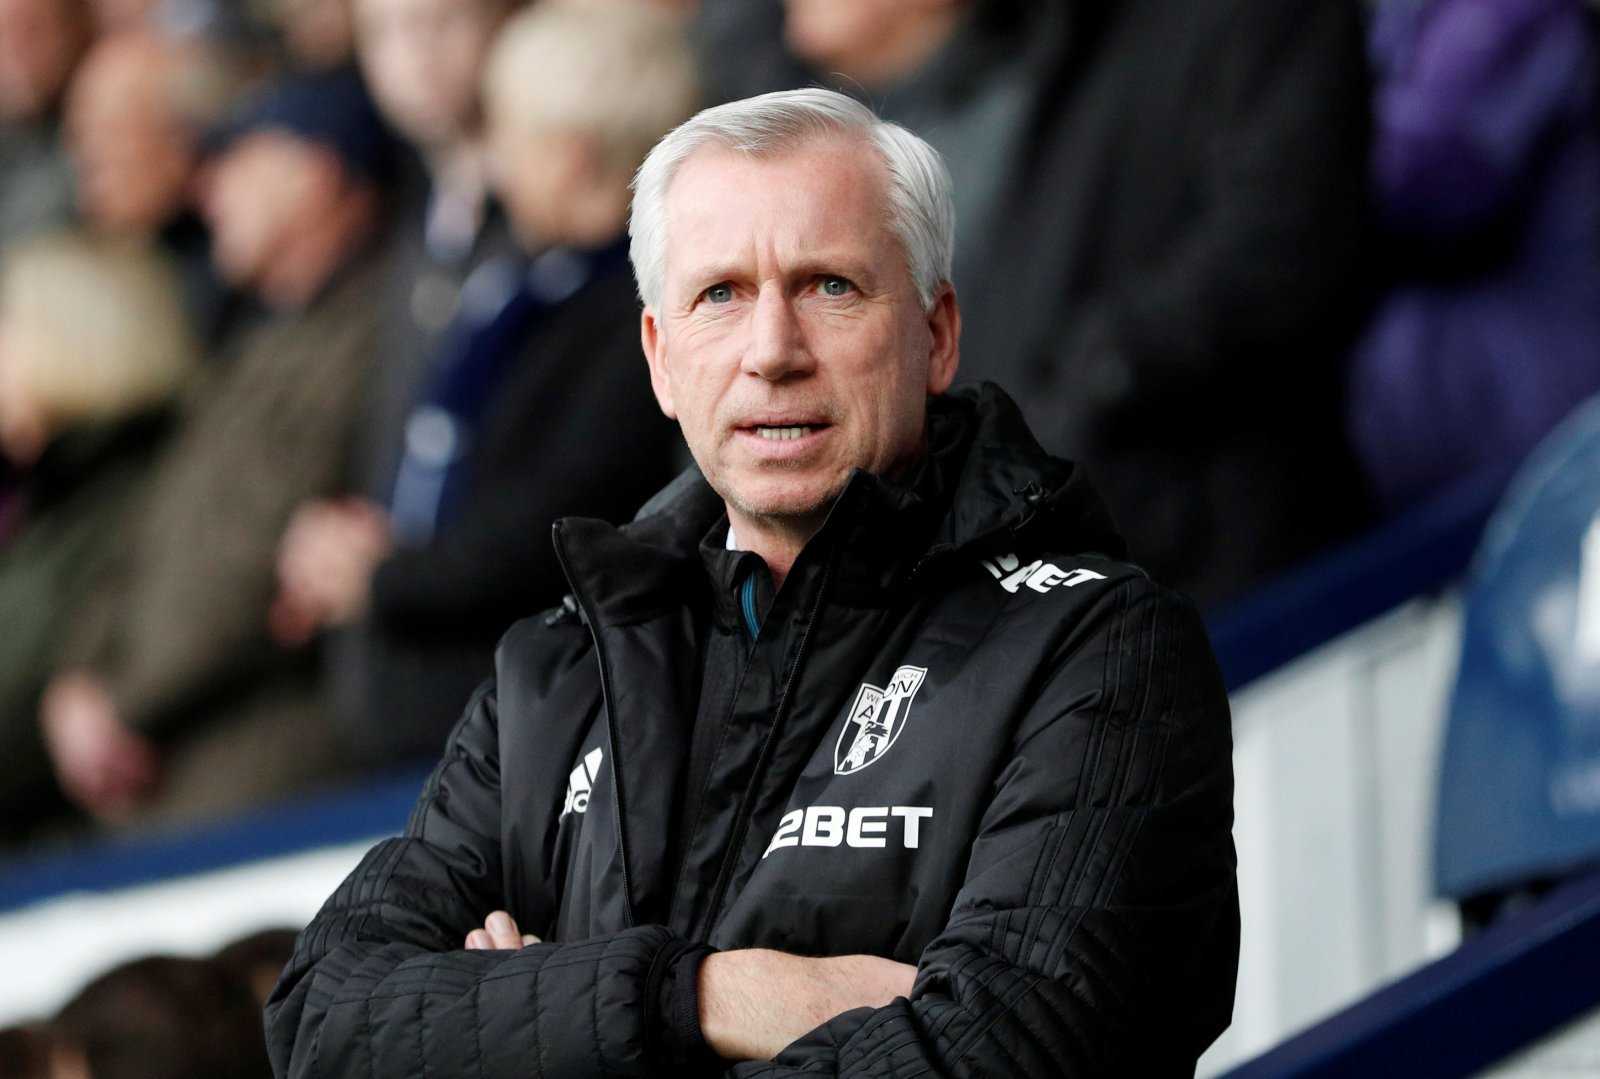 Replacing under-fire Mark Hughes with Alan Pardew would make absolutely no sense at all